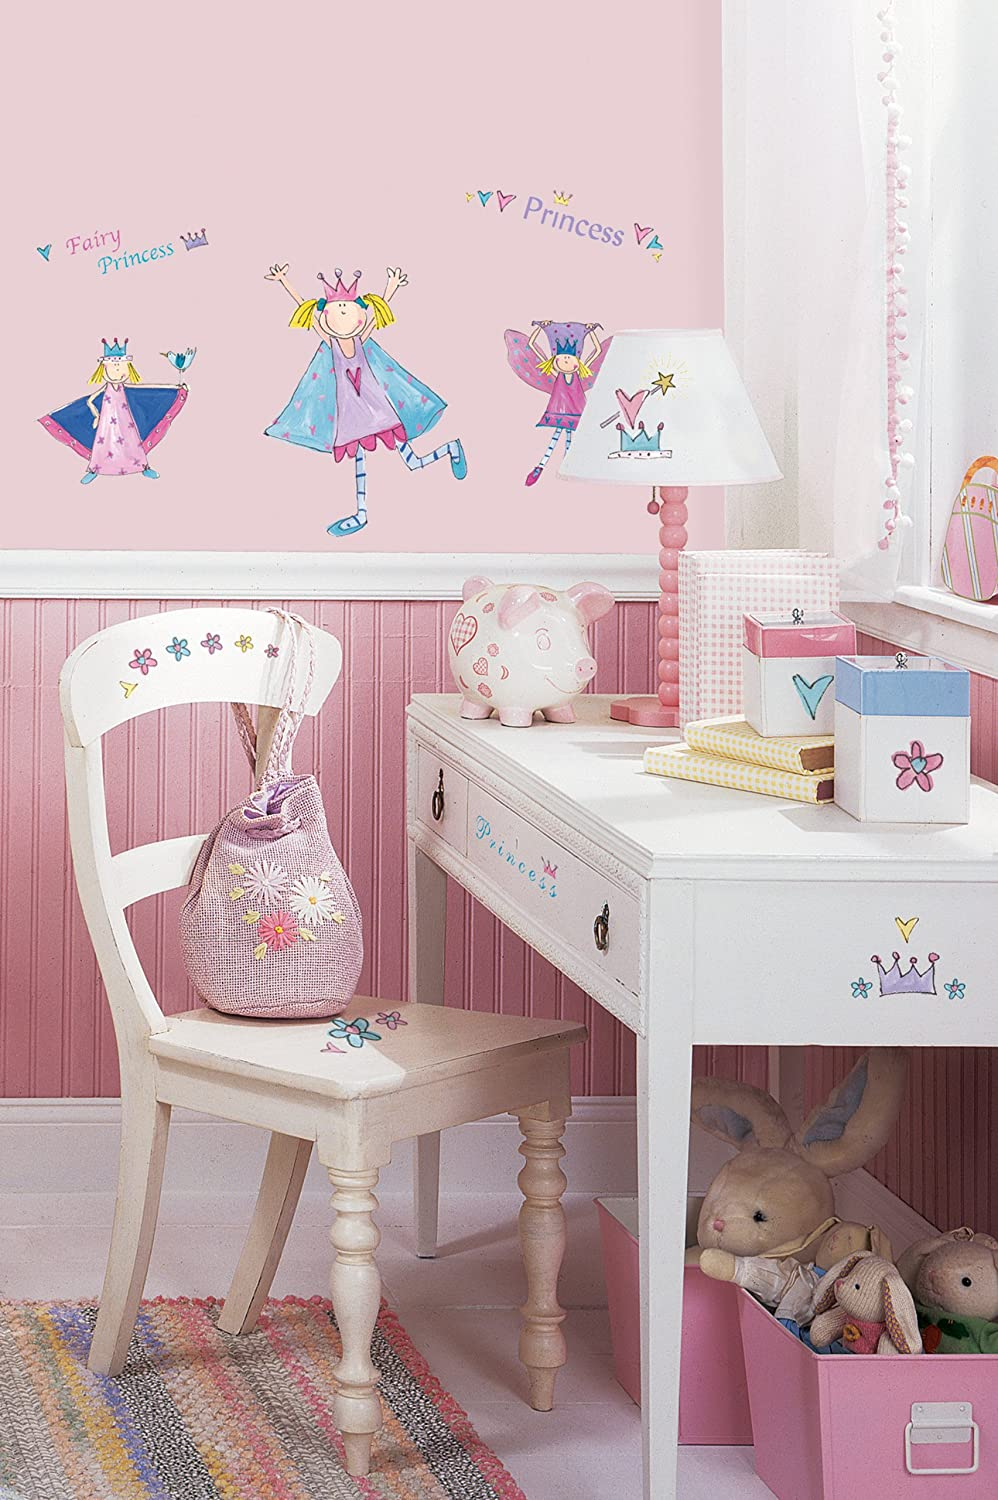 Amazon roommates rmk1015scs fairy princess peel and stick amazon roommates rmk1015scs fairy princess peel and stick wall decals home improvement amipublicfo Gallery